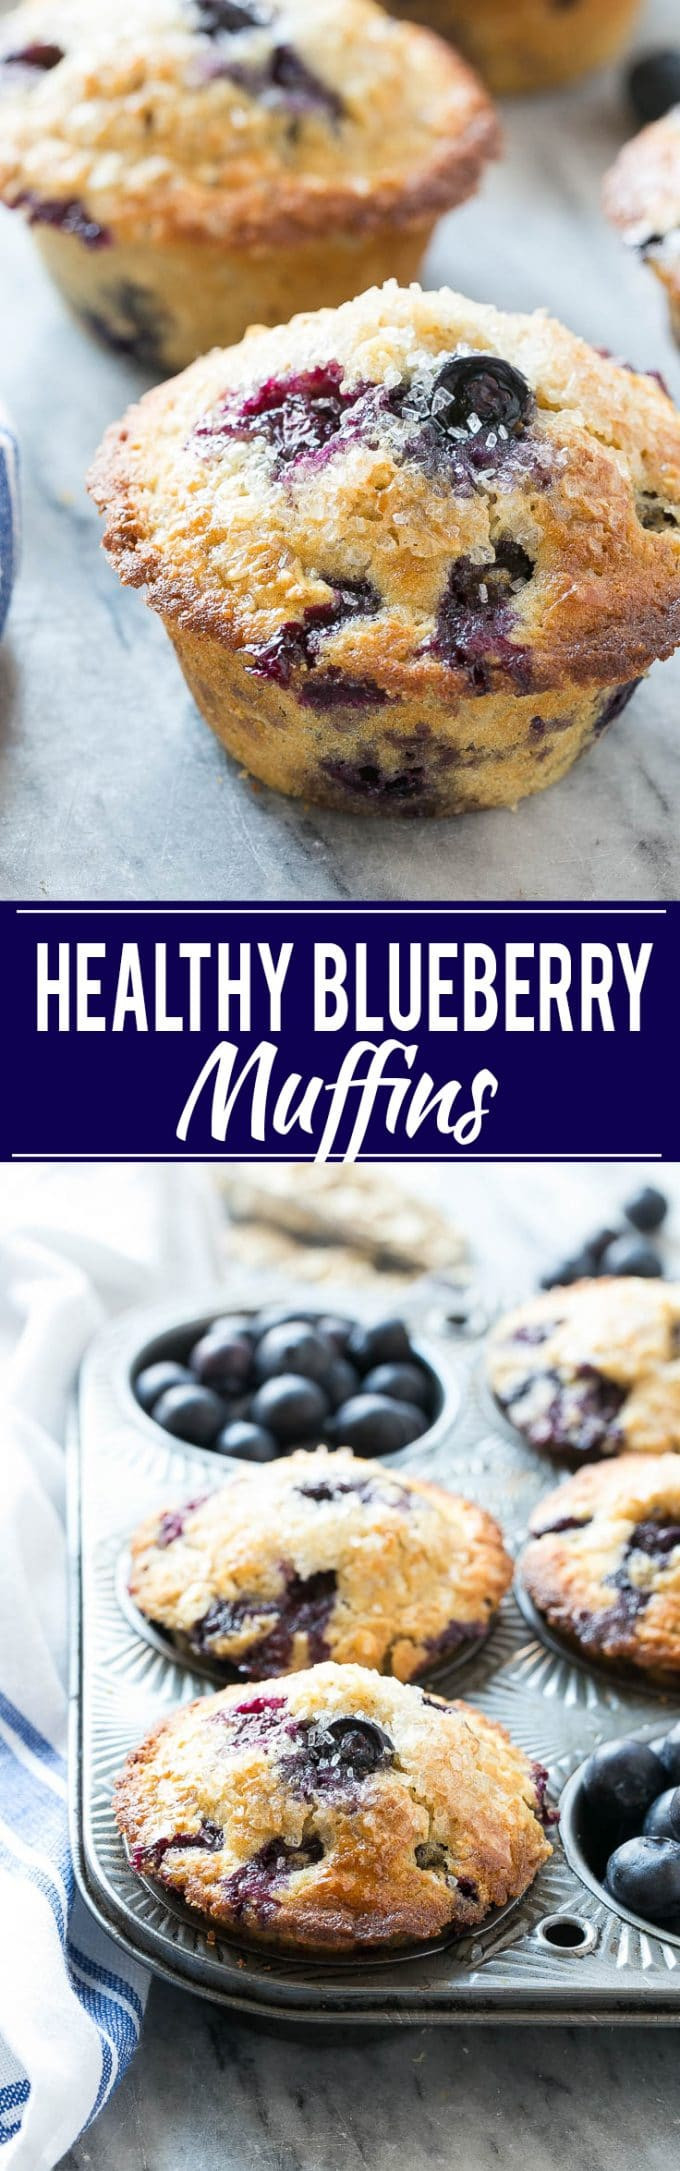 Healthy Oatmeal Muffins Applesauce  healthy blueberry muffins with applesauce